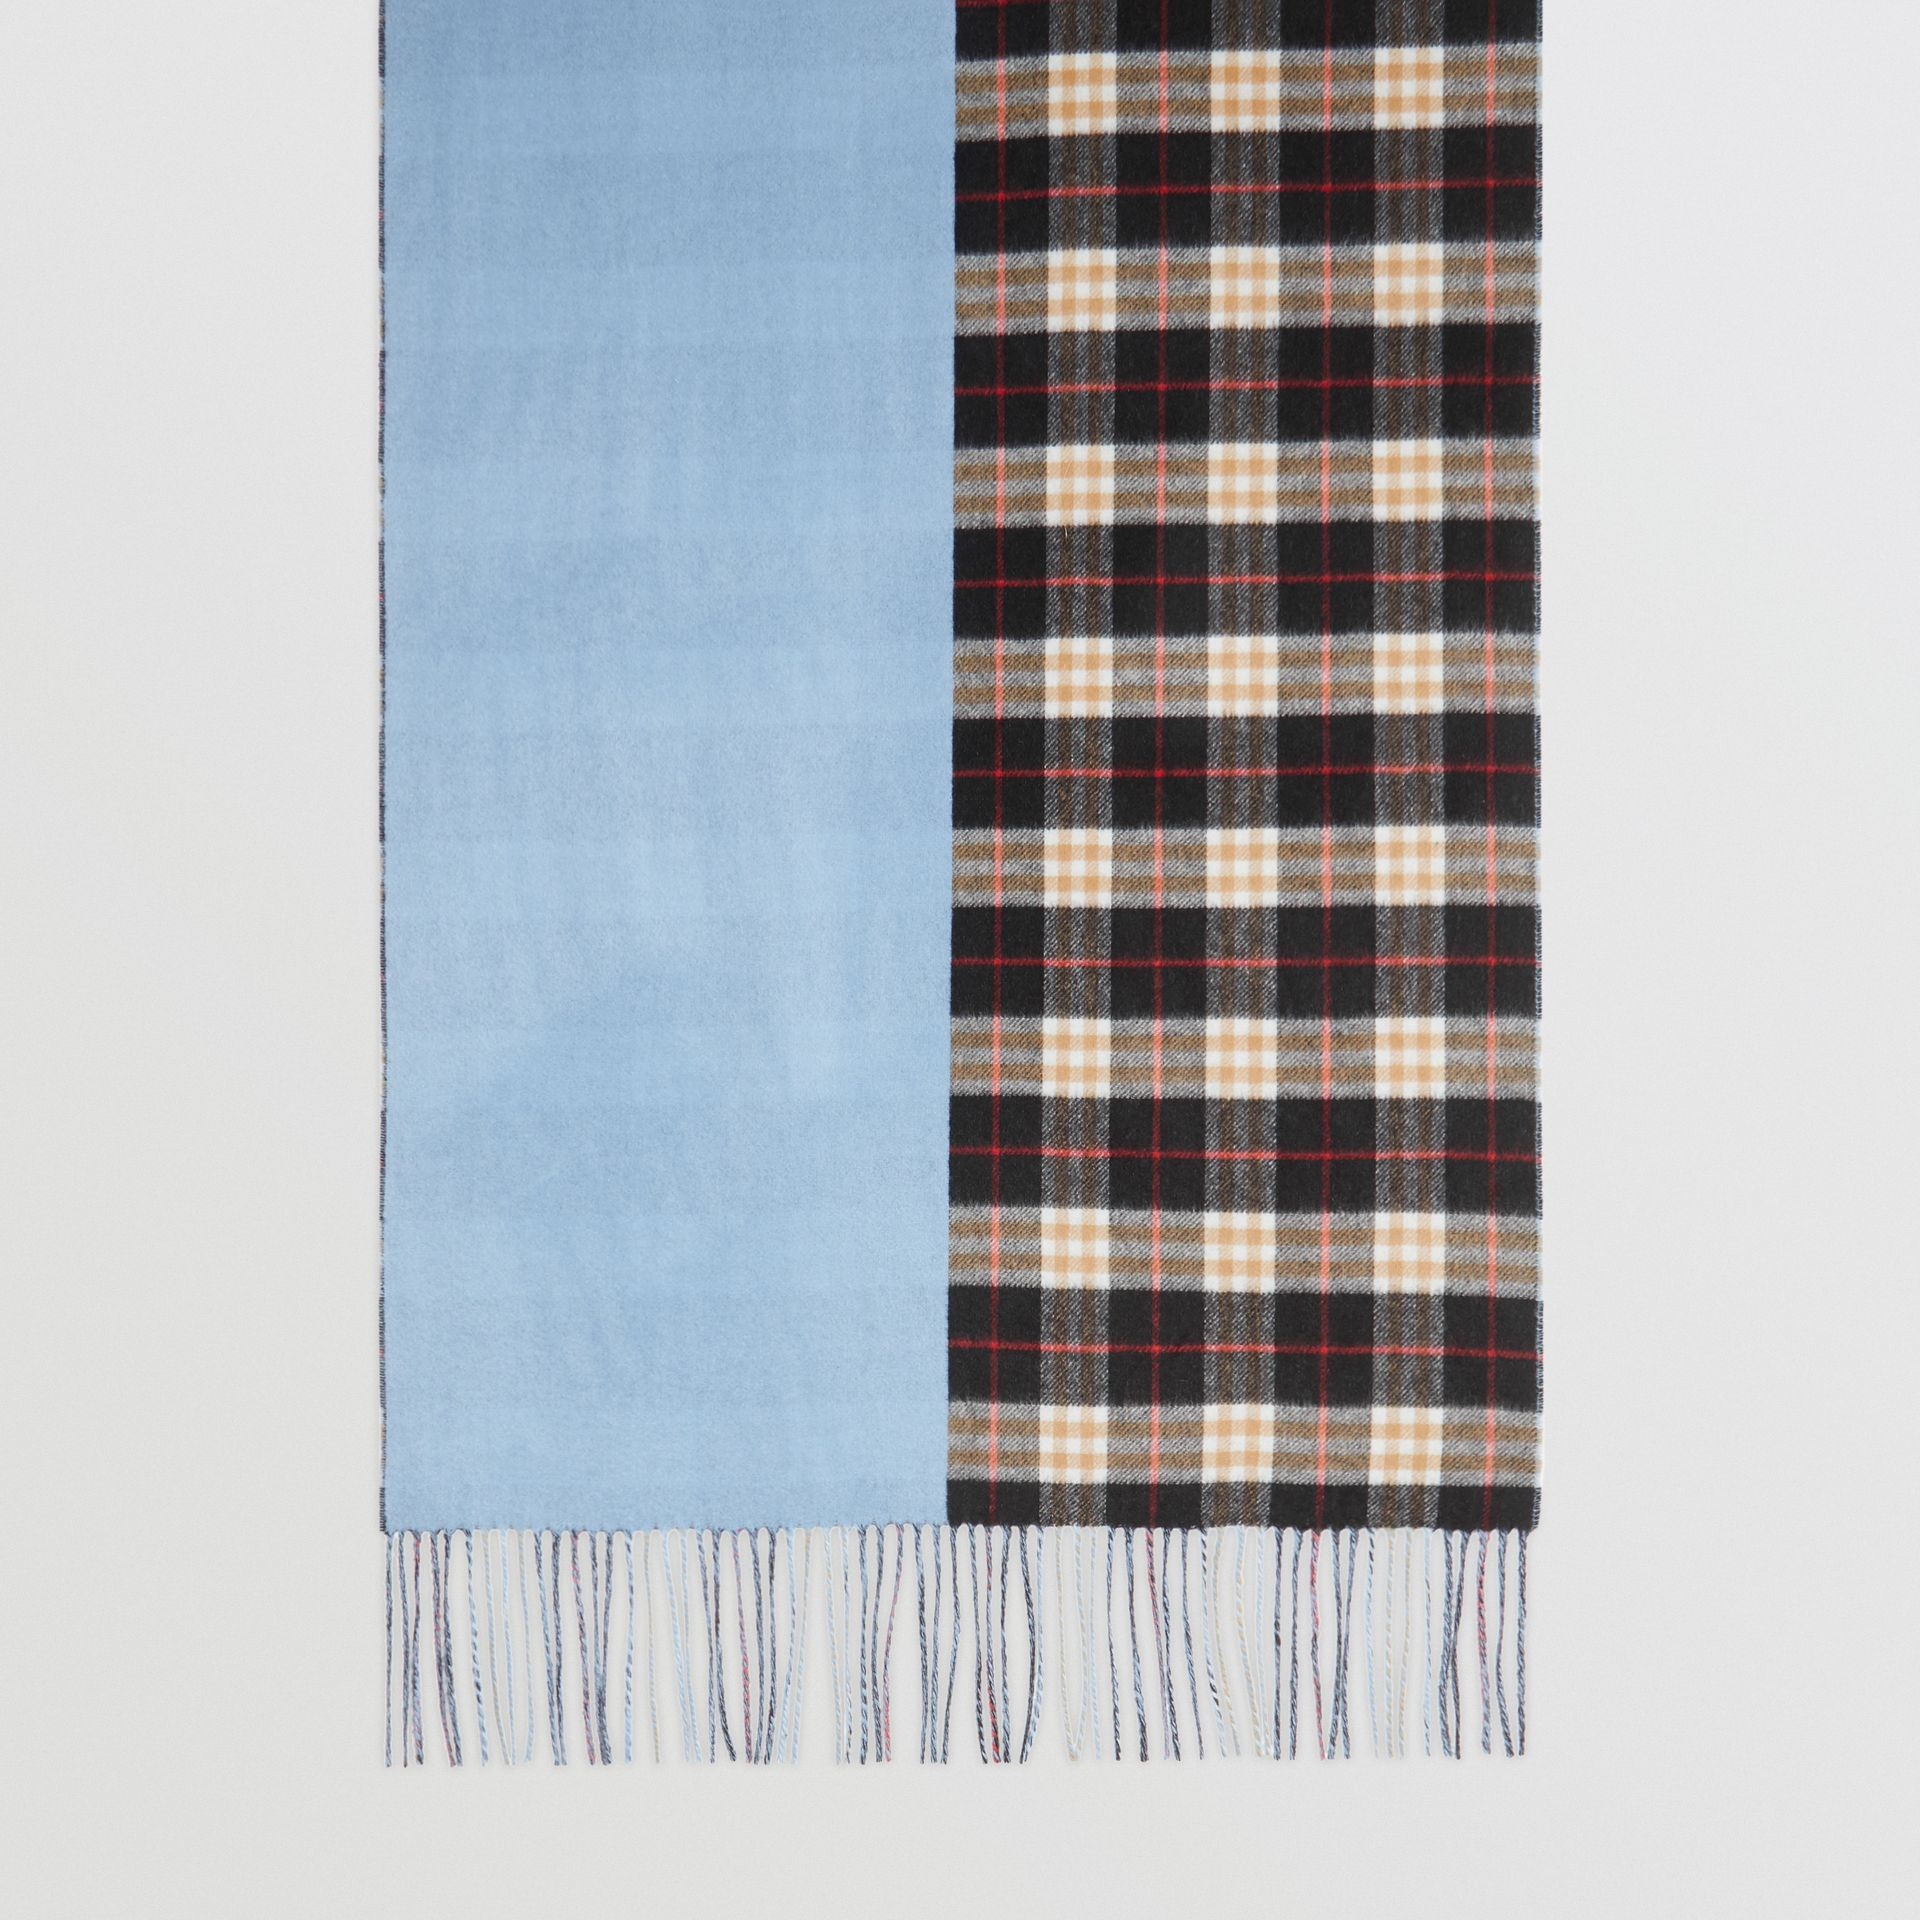 Colour Block Vintage Check Cashmere Scarf in Pale Air Force Blue | Burberry - gallery image 2